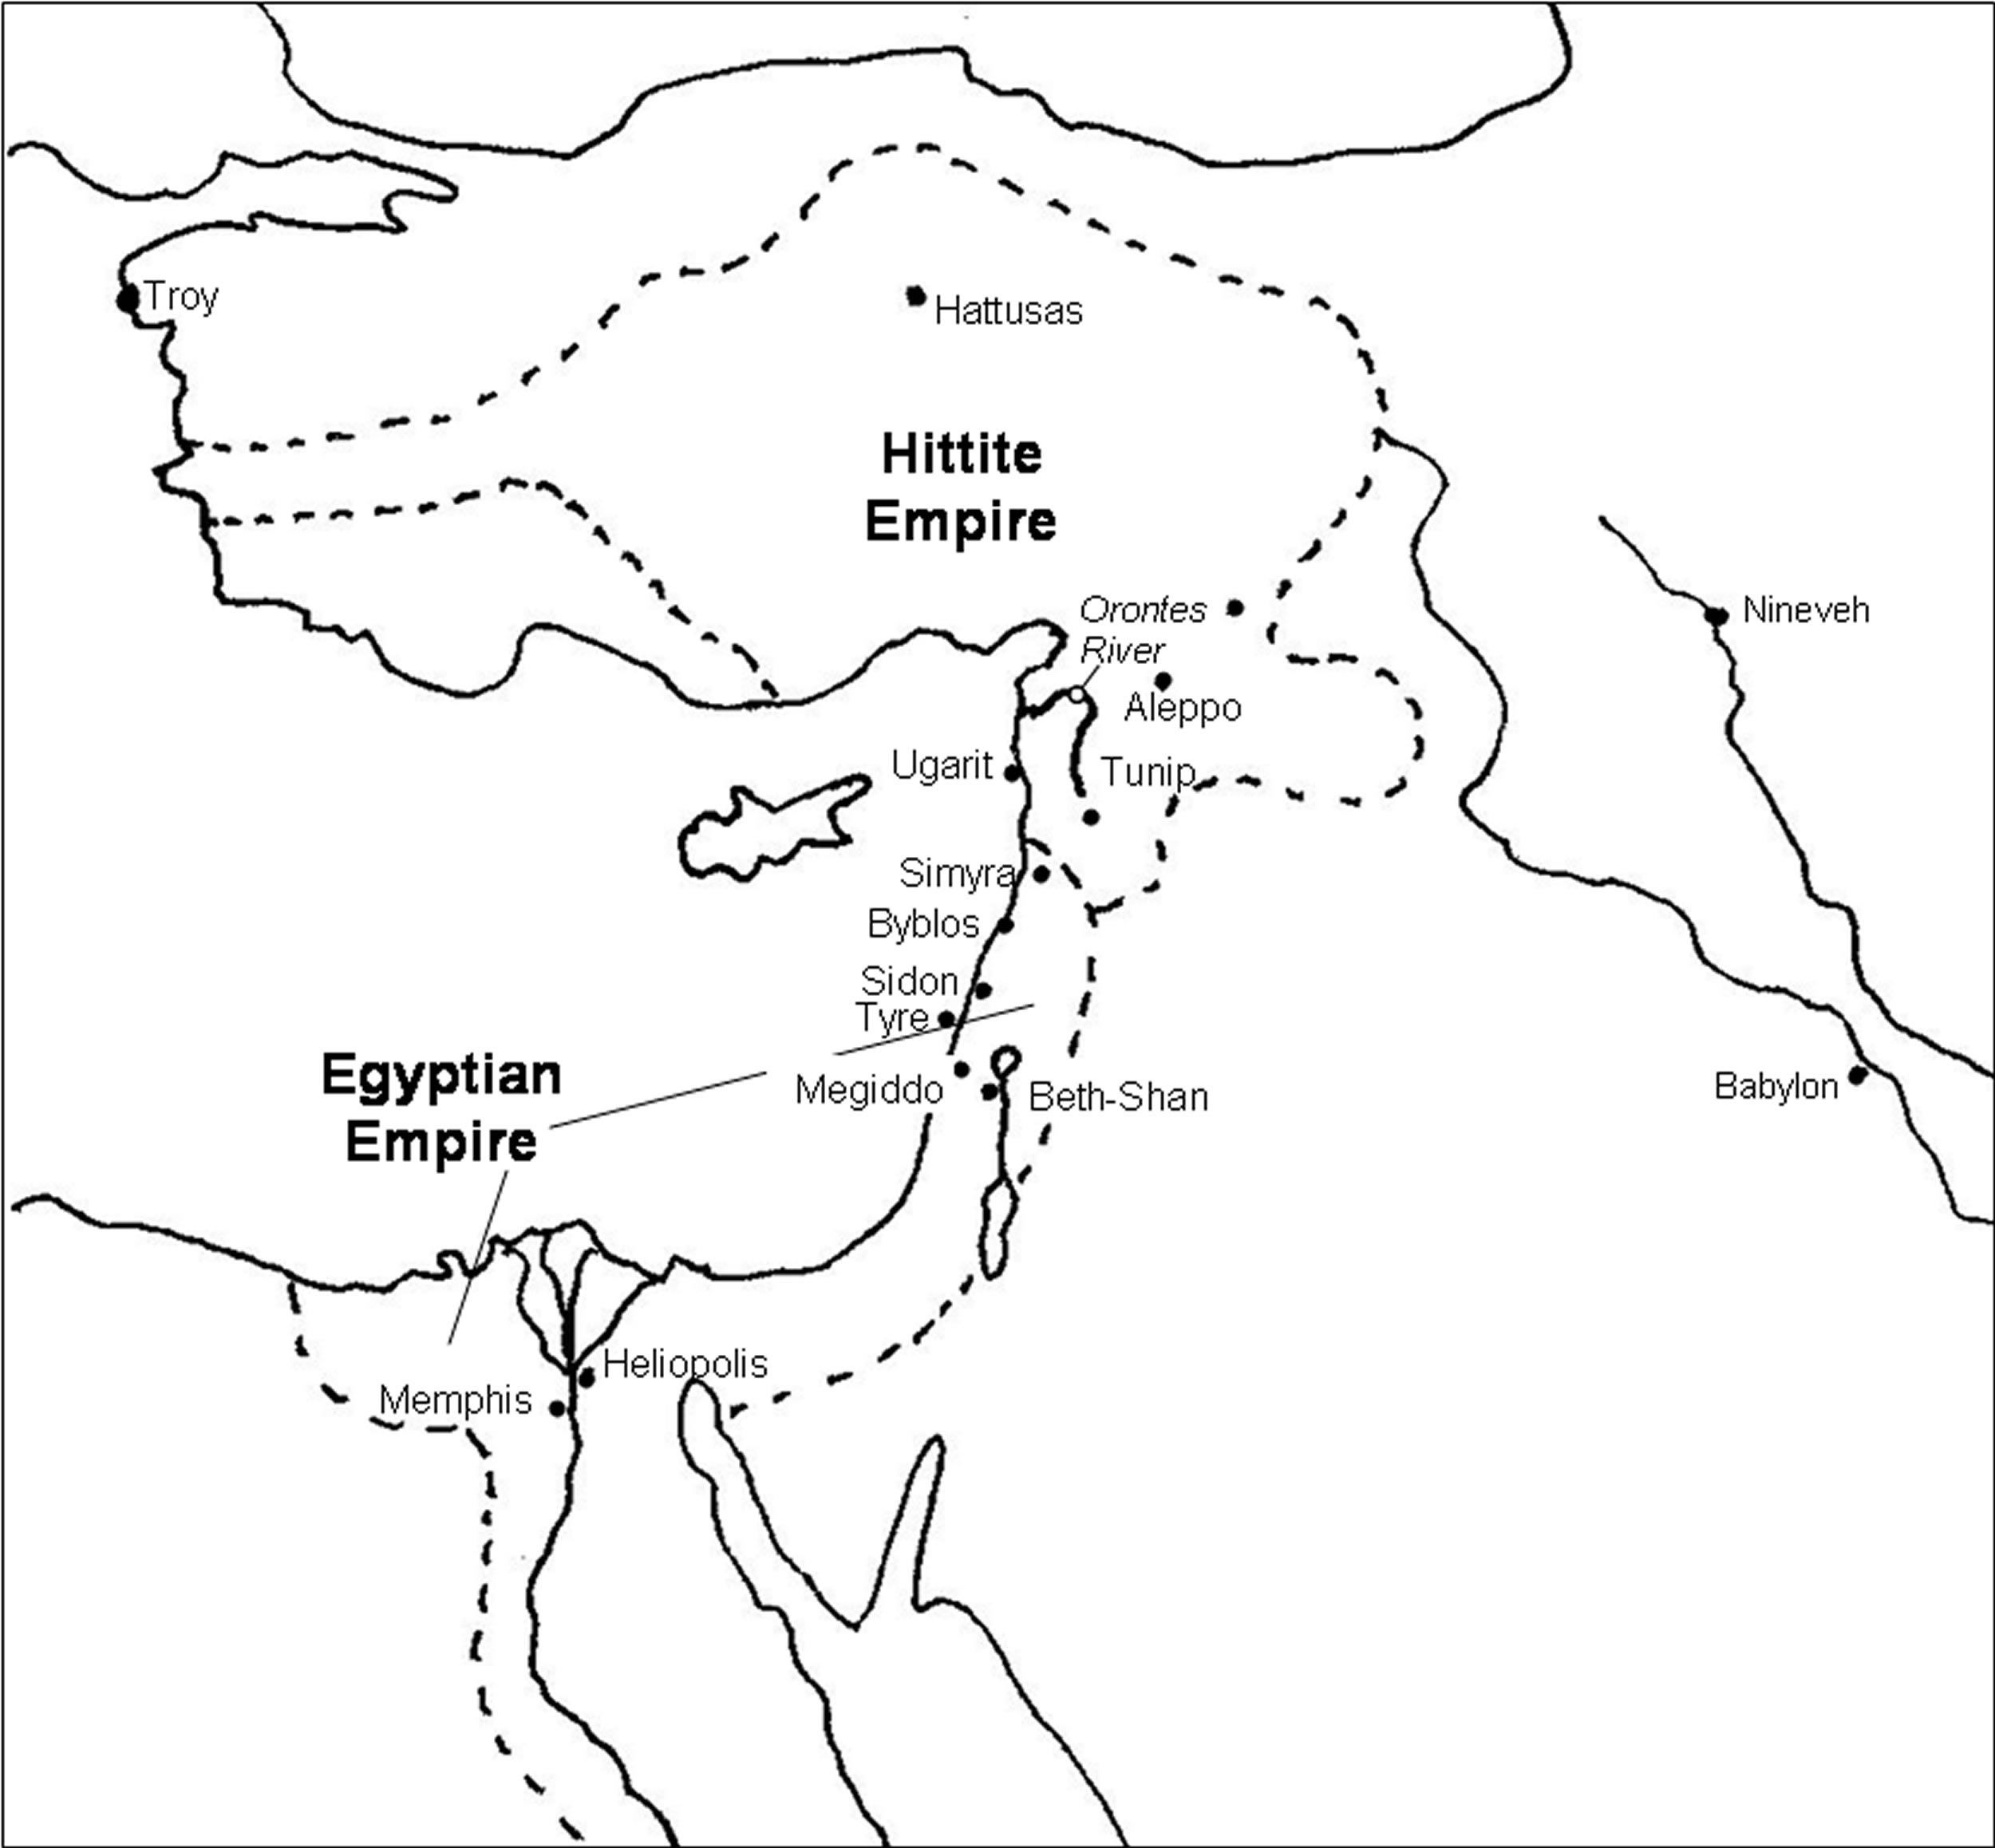 C1w7 Map and quick info for ancient India and China Unit 13